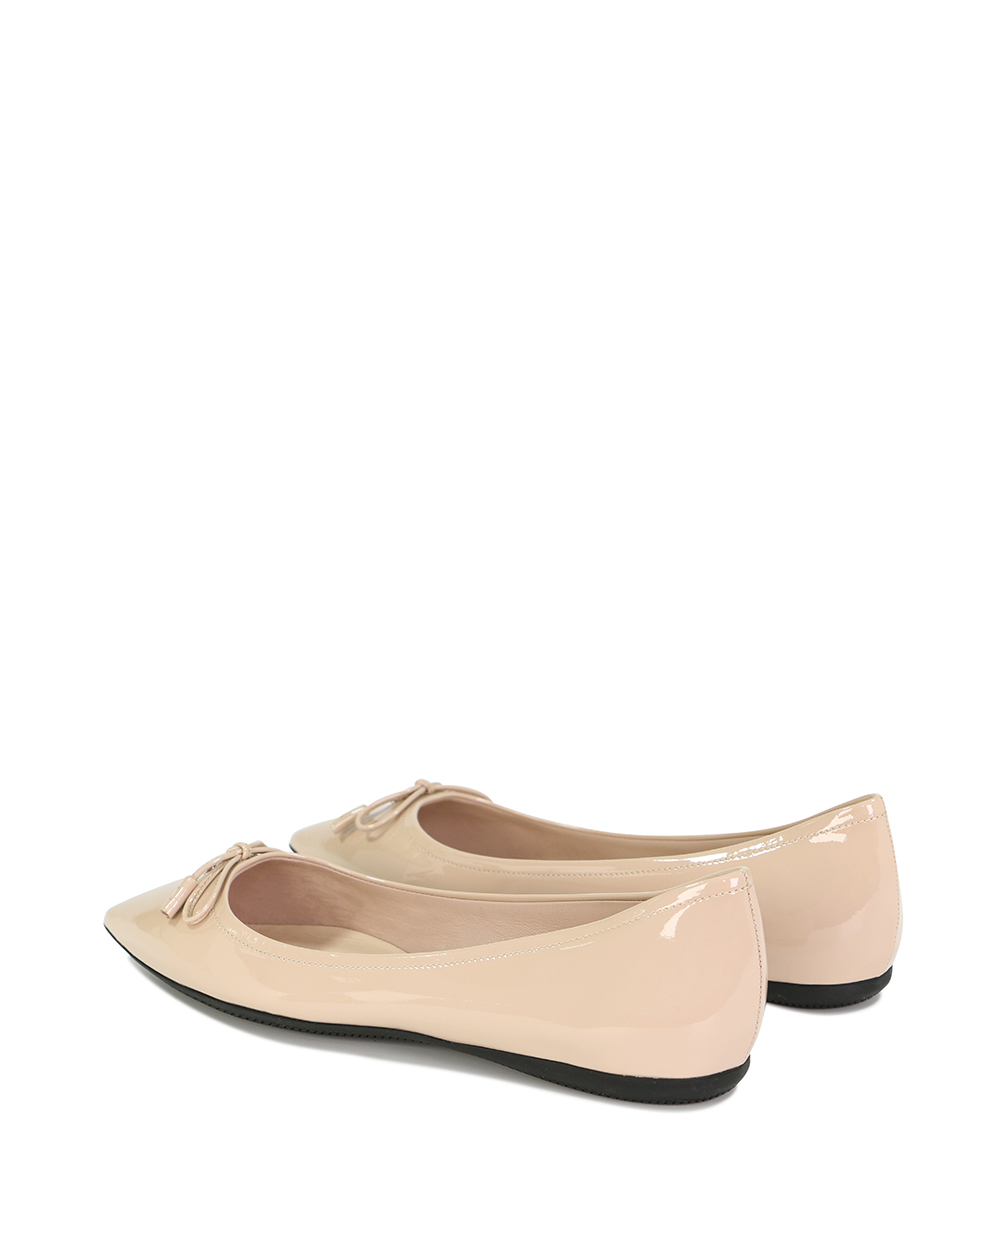 Leather Bow Flat Shoes 2